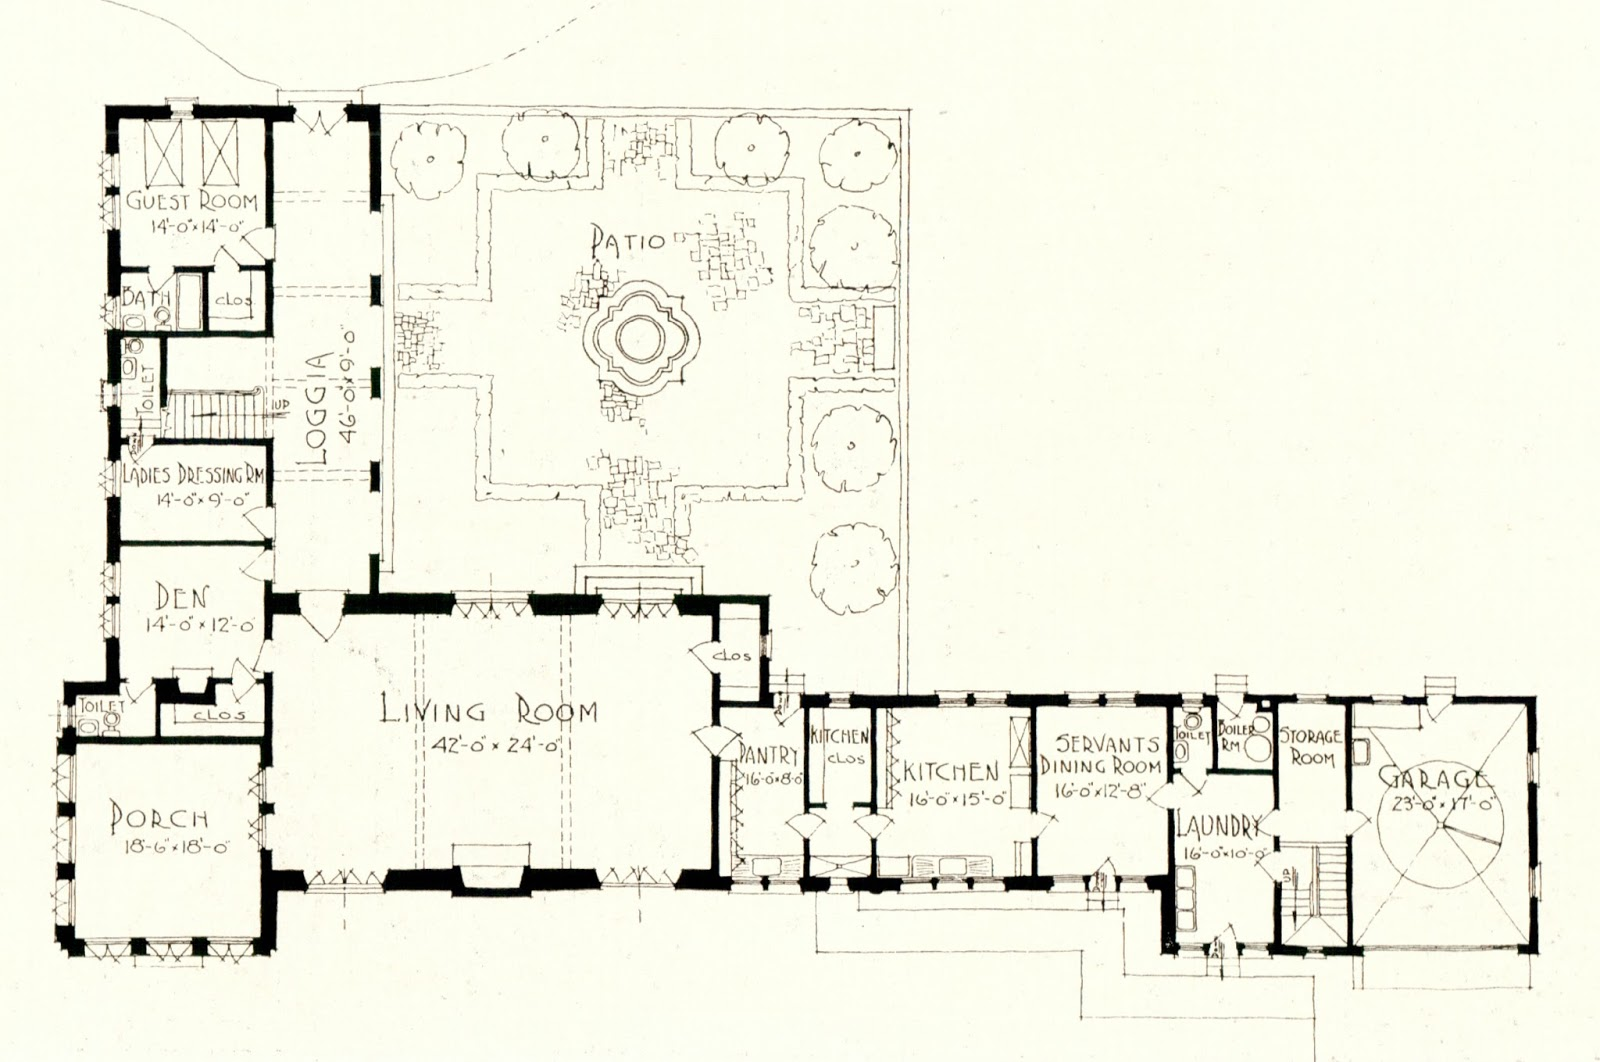 Smith house floor plans Home design and style – Mr And Mrs Smith House Floor Plan